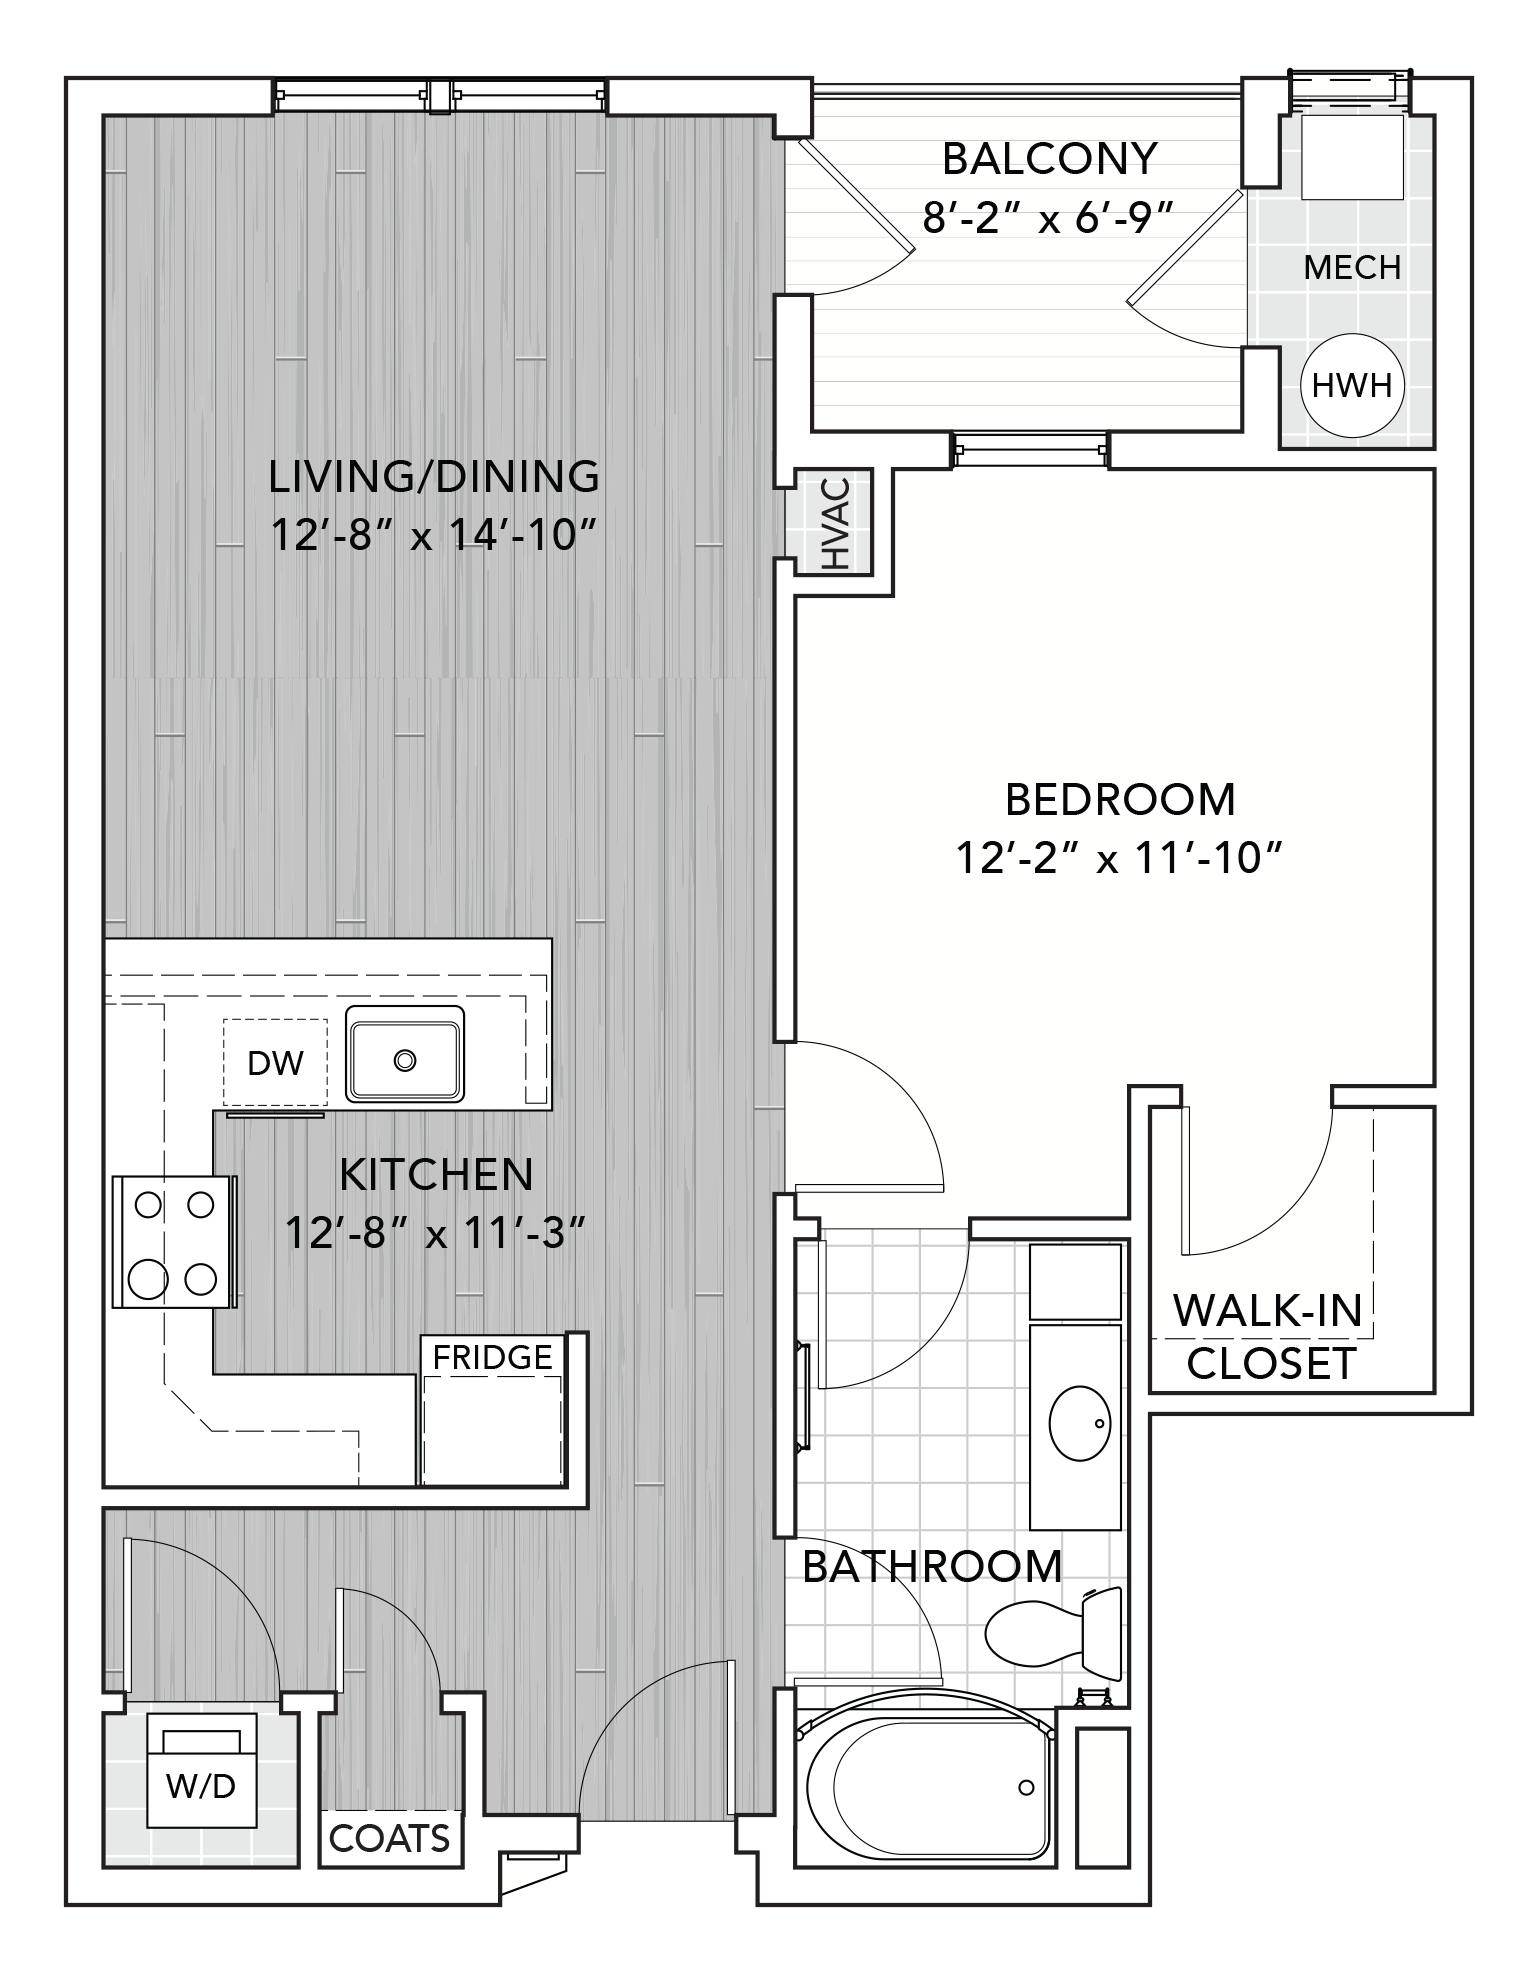 P0655013 parksquare a3 789 2 floorplan